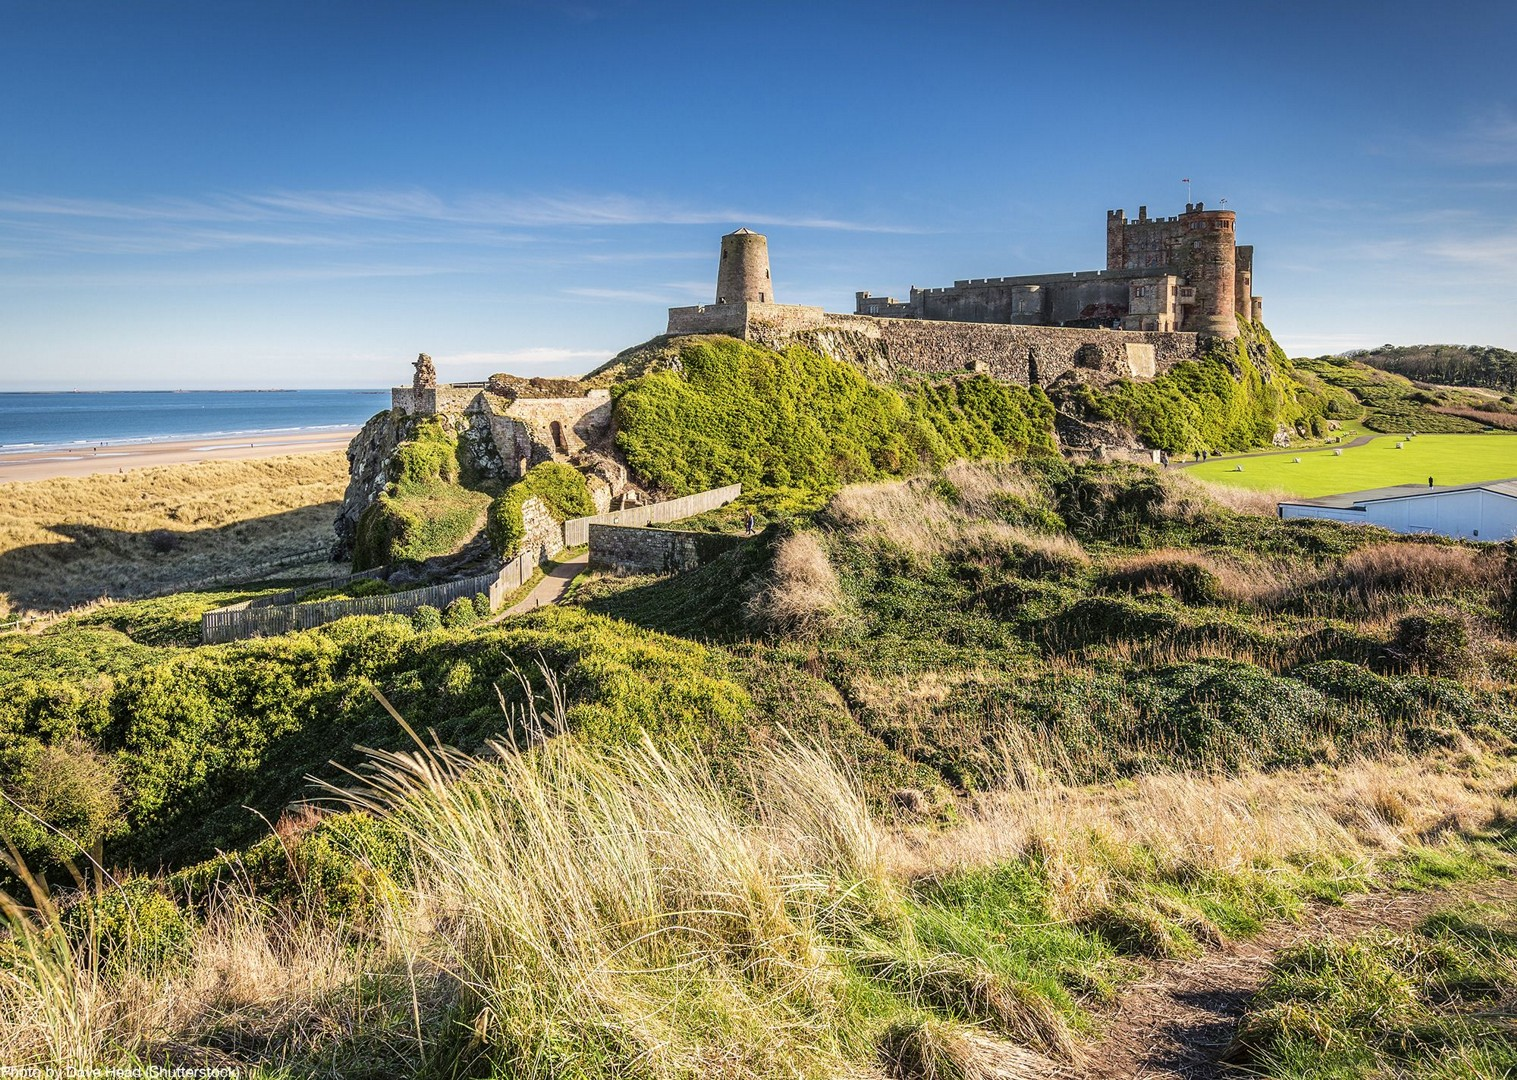 dunstanburgh-bamburgh-castle-coast-uk-england-self-guided-cycling.jpg - UK - Northumberland - Alnmouth - Guided Leisure Cycling Holiday - Leisure Cycling